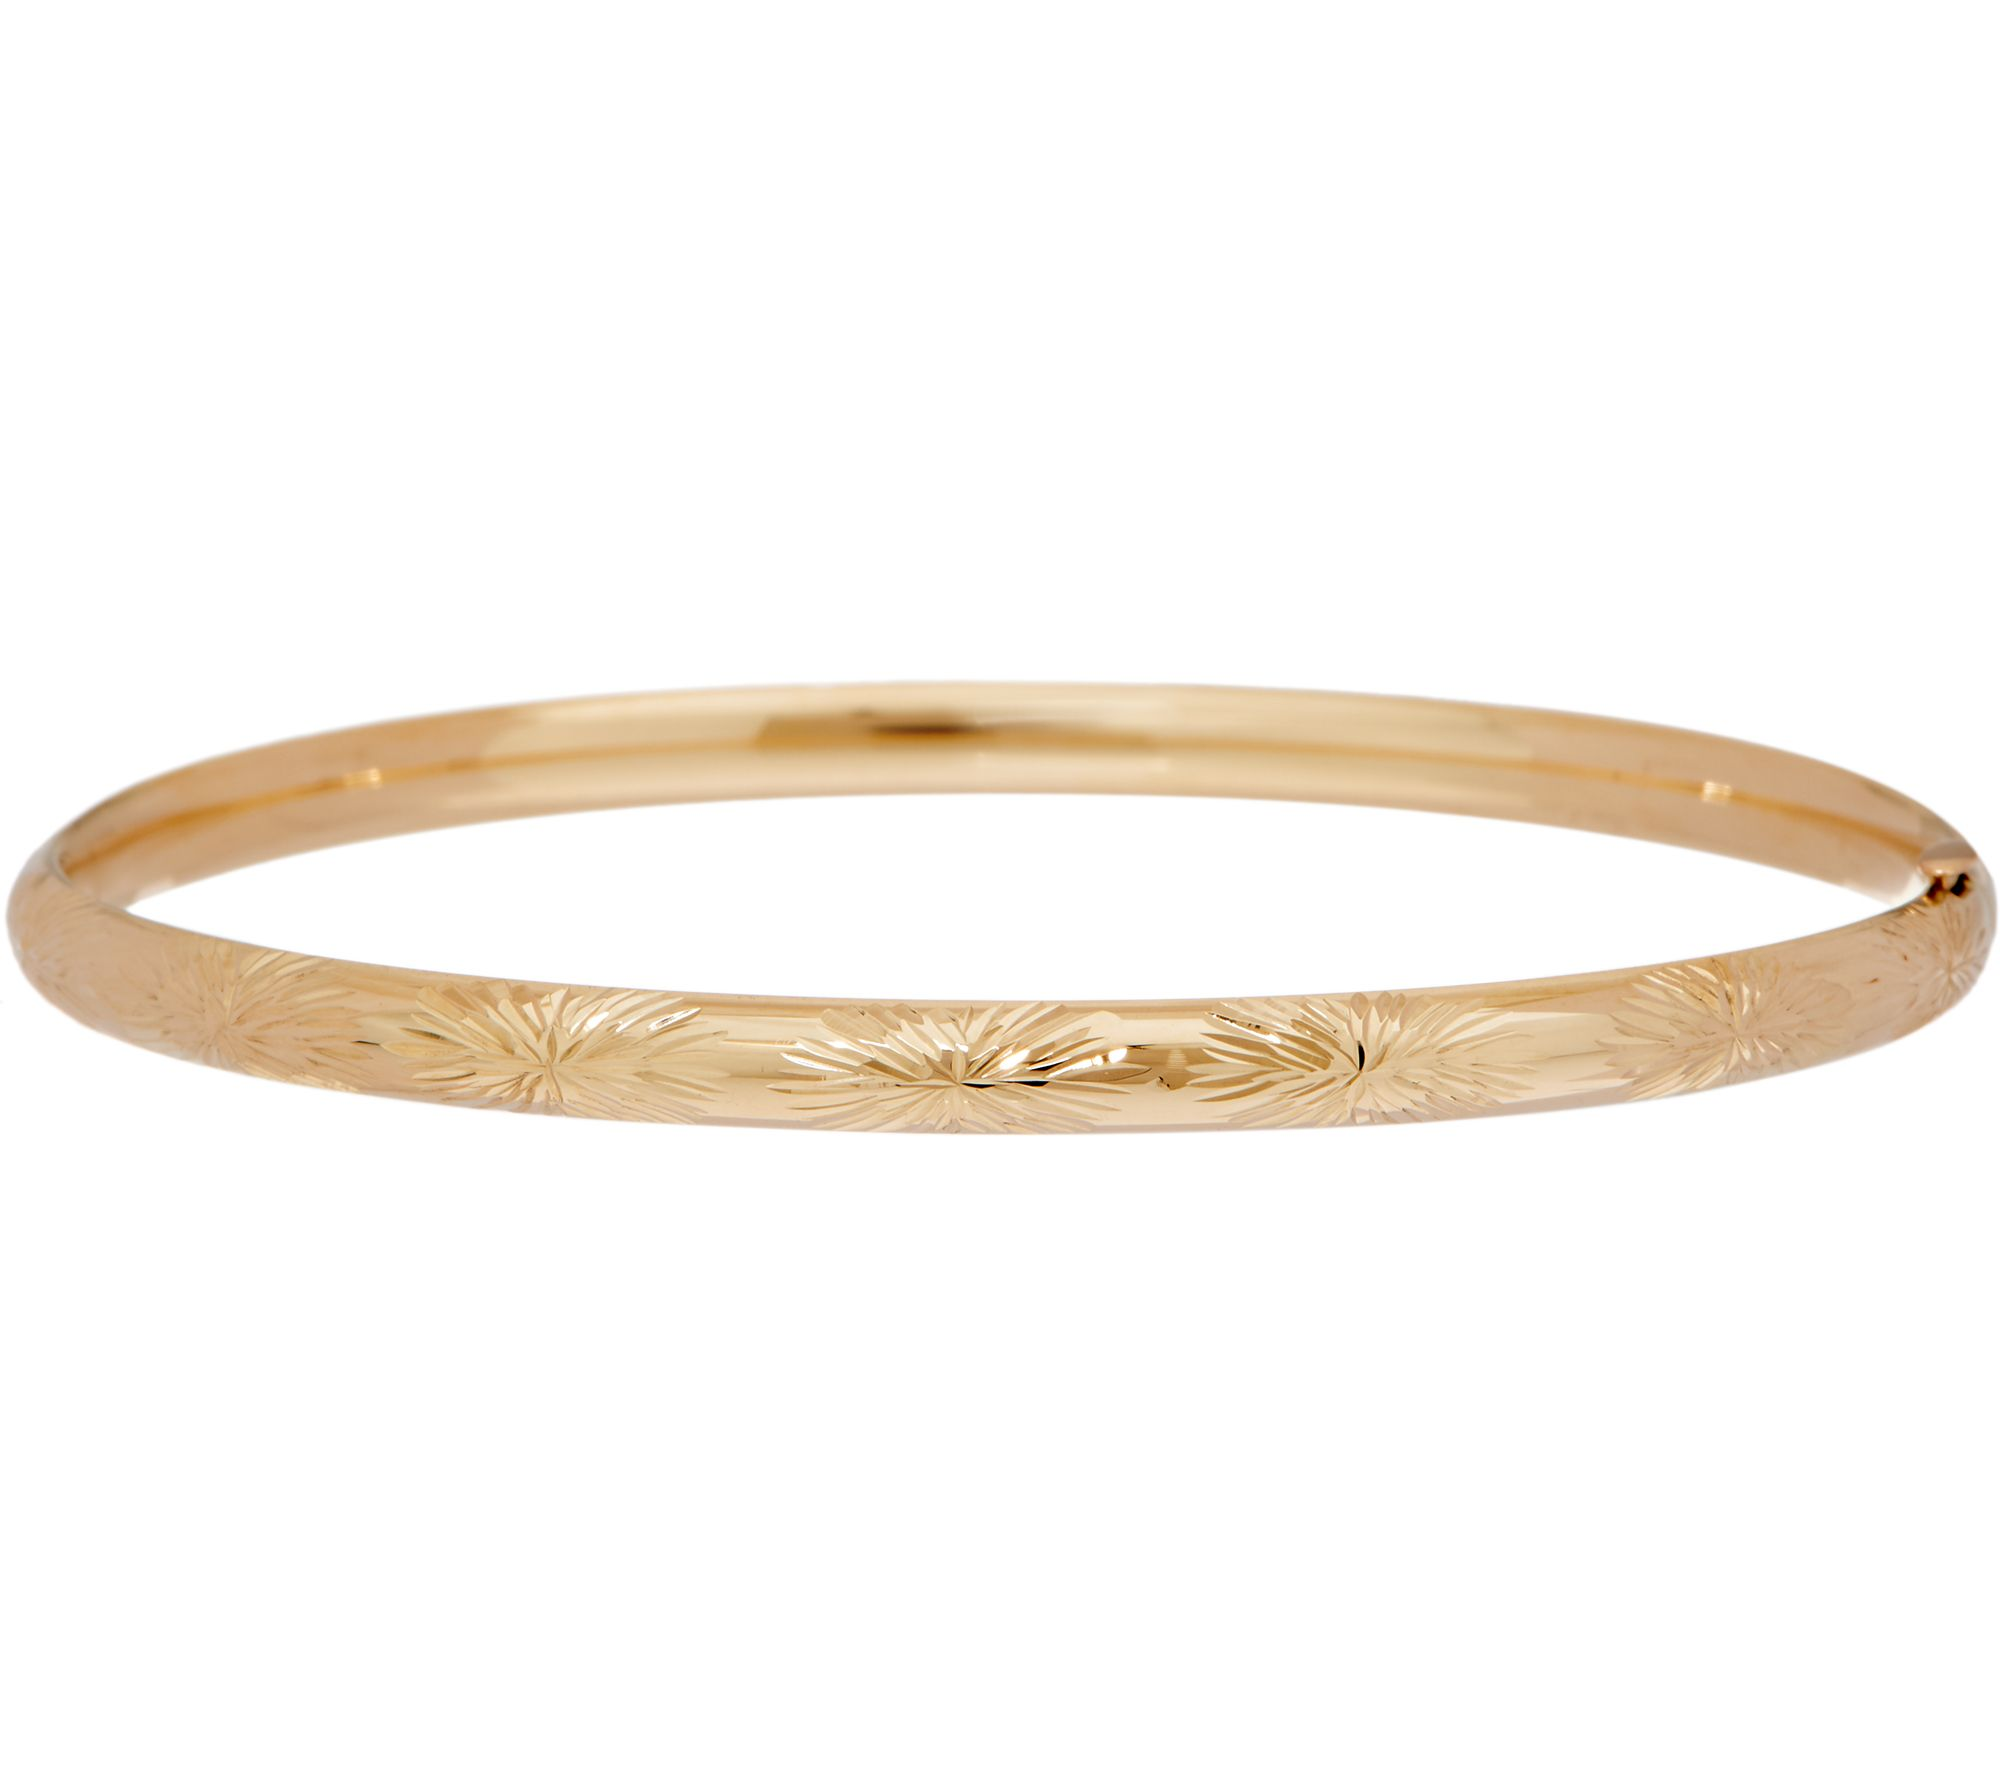 bangles bangle opulent jewelry anniversary popular gold bracelet cartier jewelers diamond